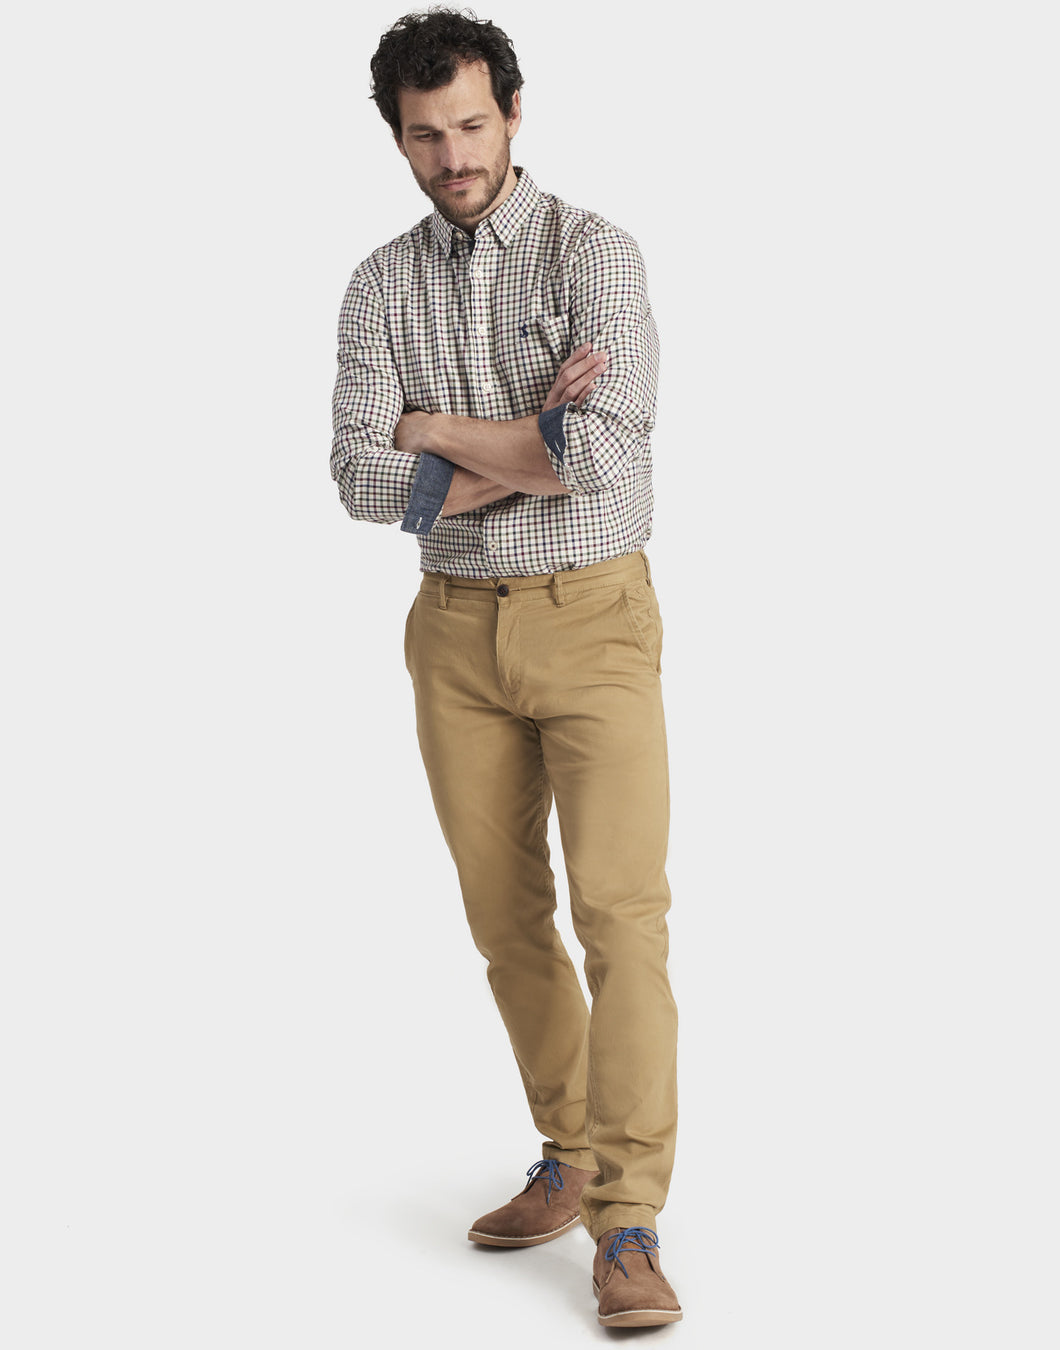 The Chino by Joules for Men